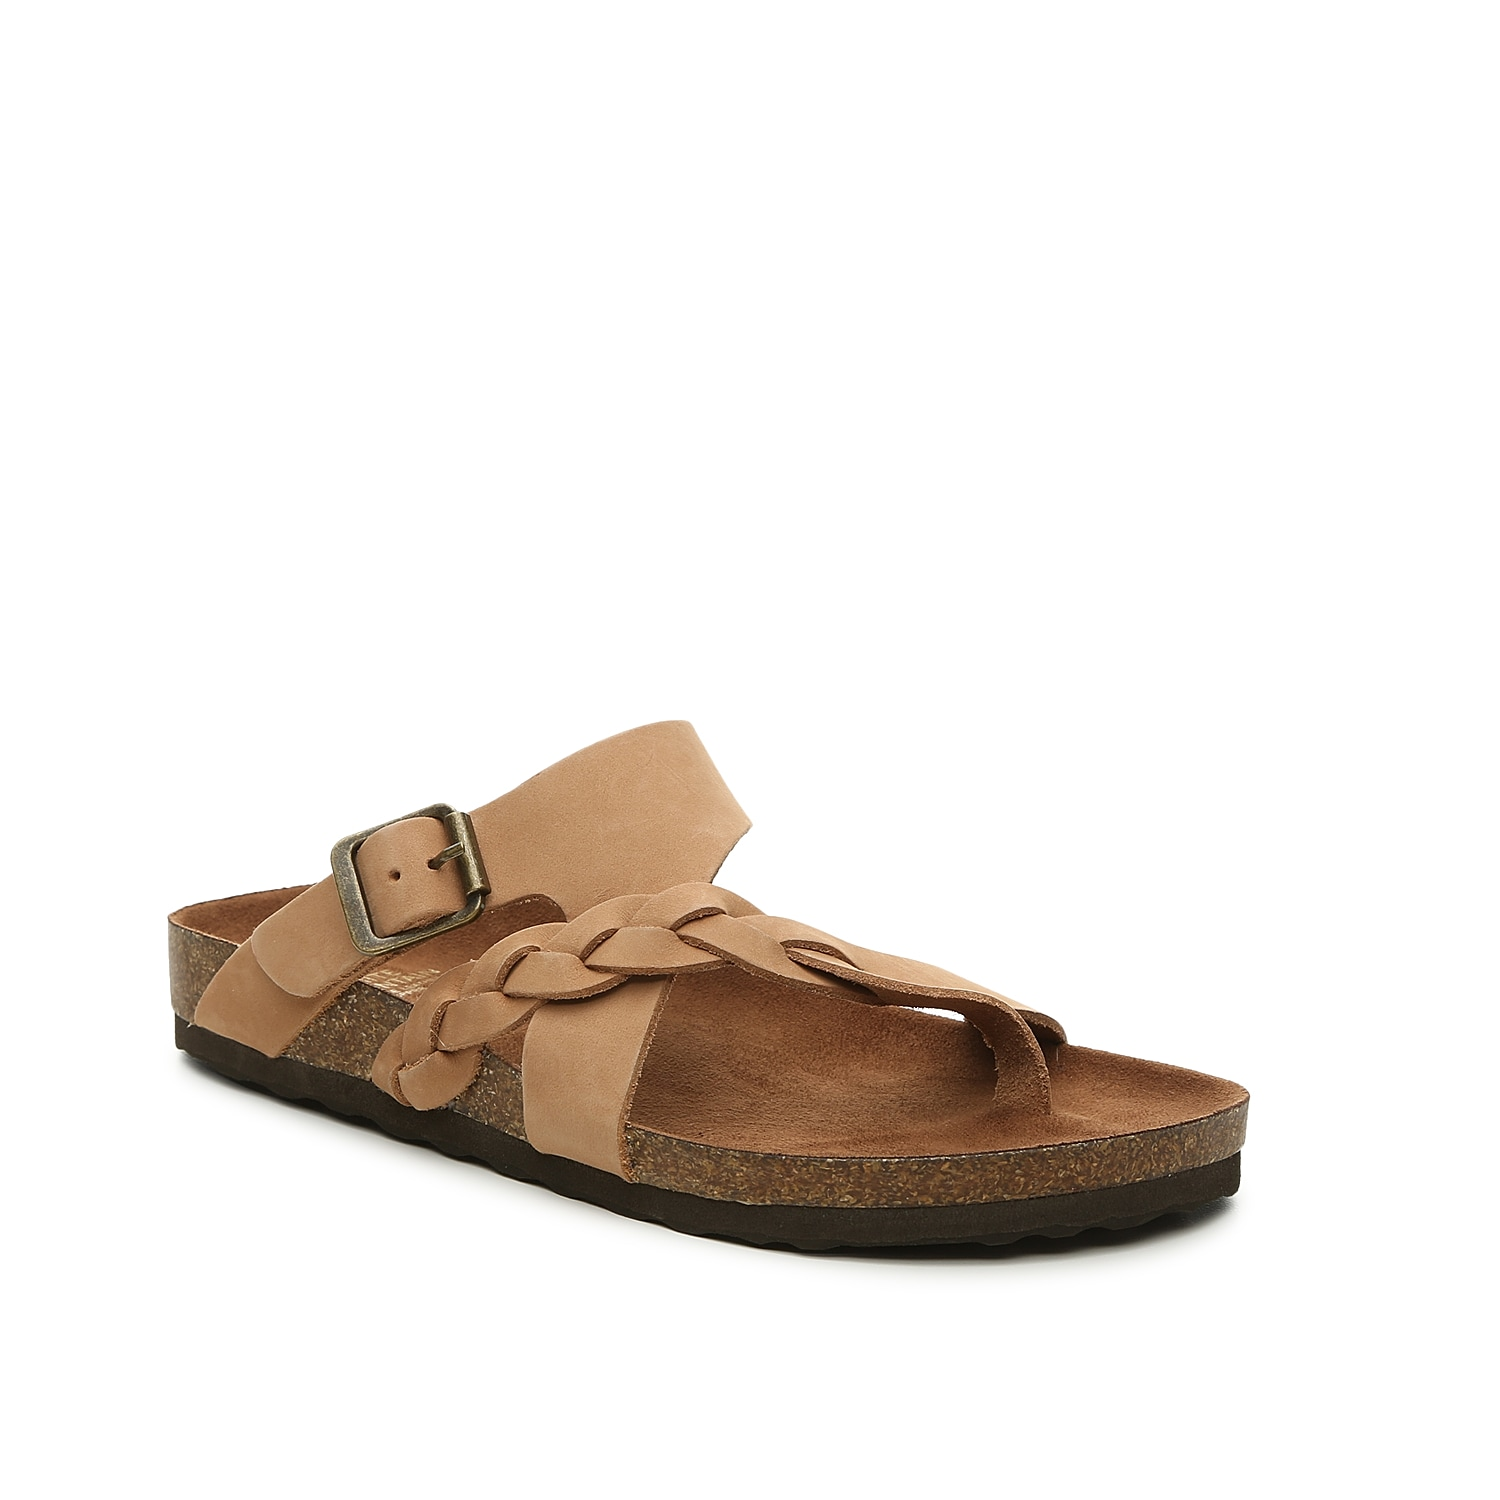 Slip on these comfy slides to complete your casual look. Classic and versatile, the Hamilton flat sandal from White Mountain will become your go-to on warm days.